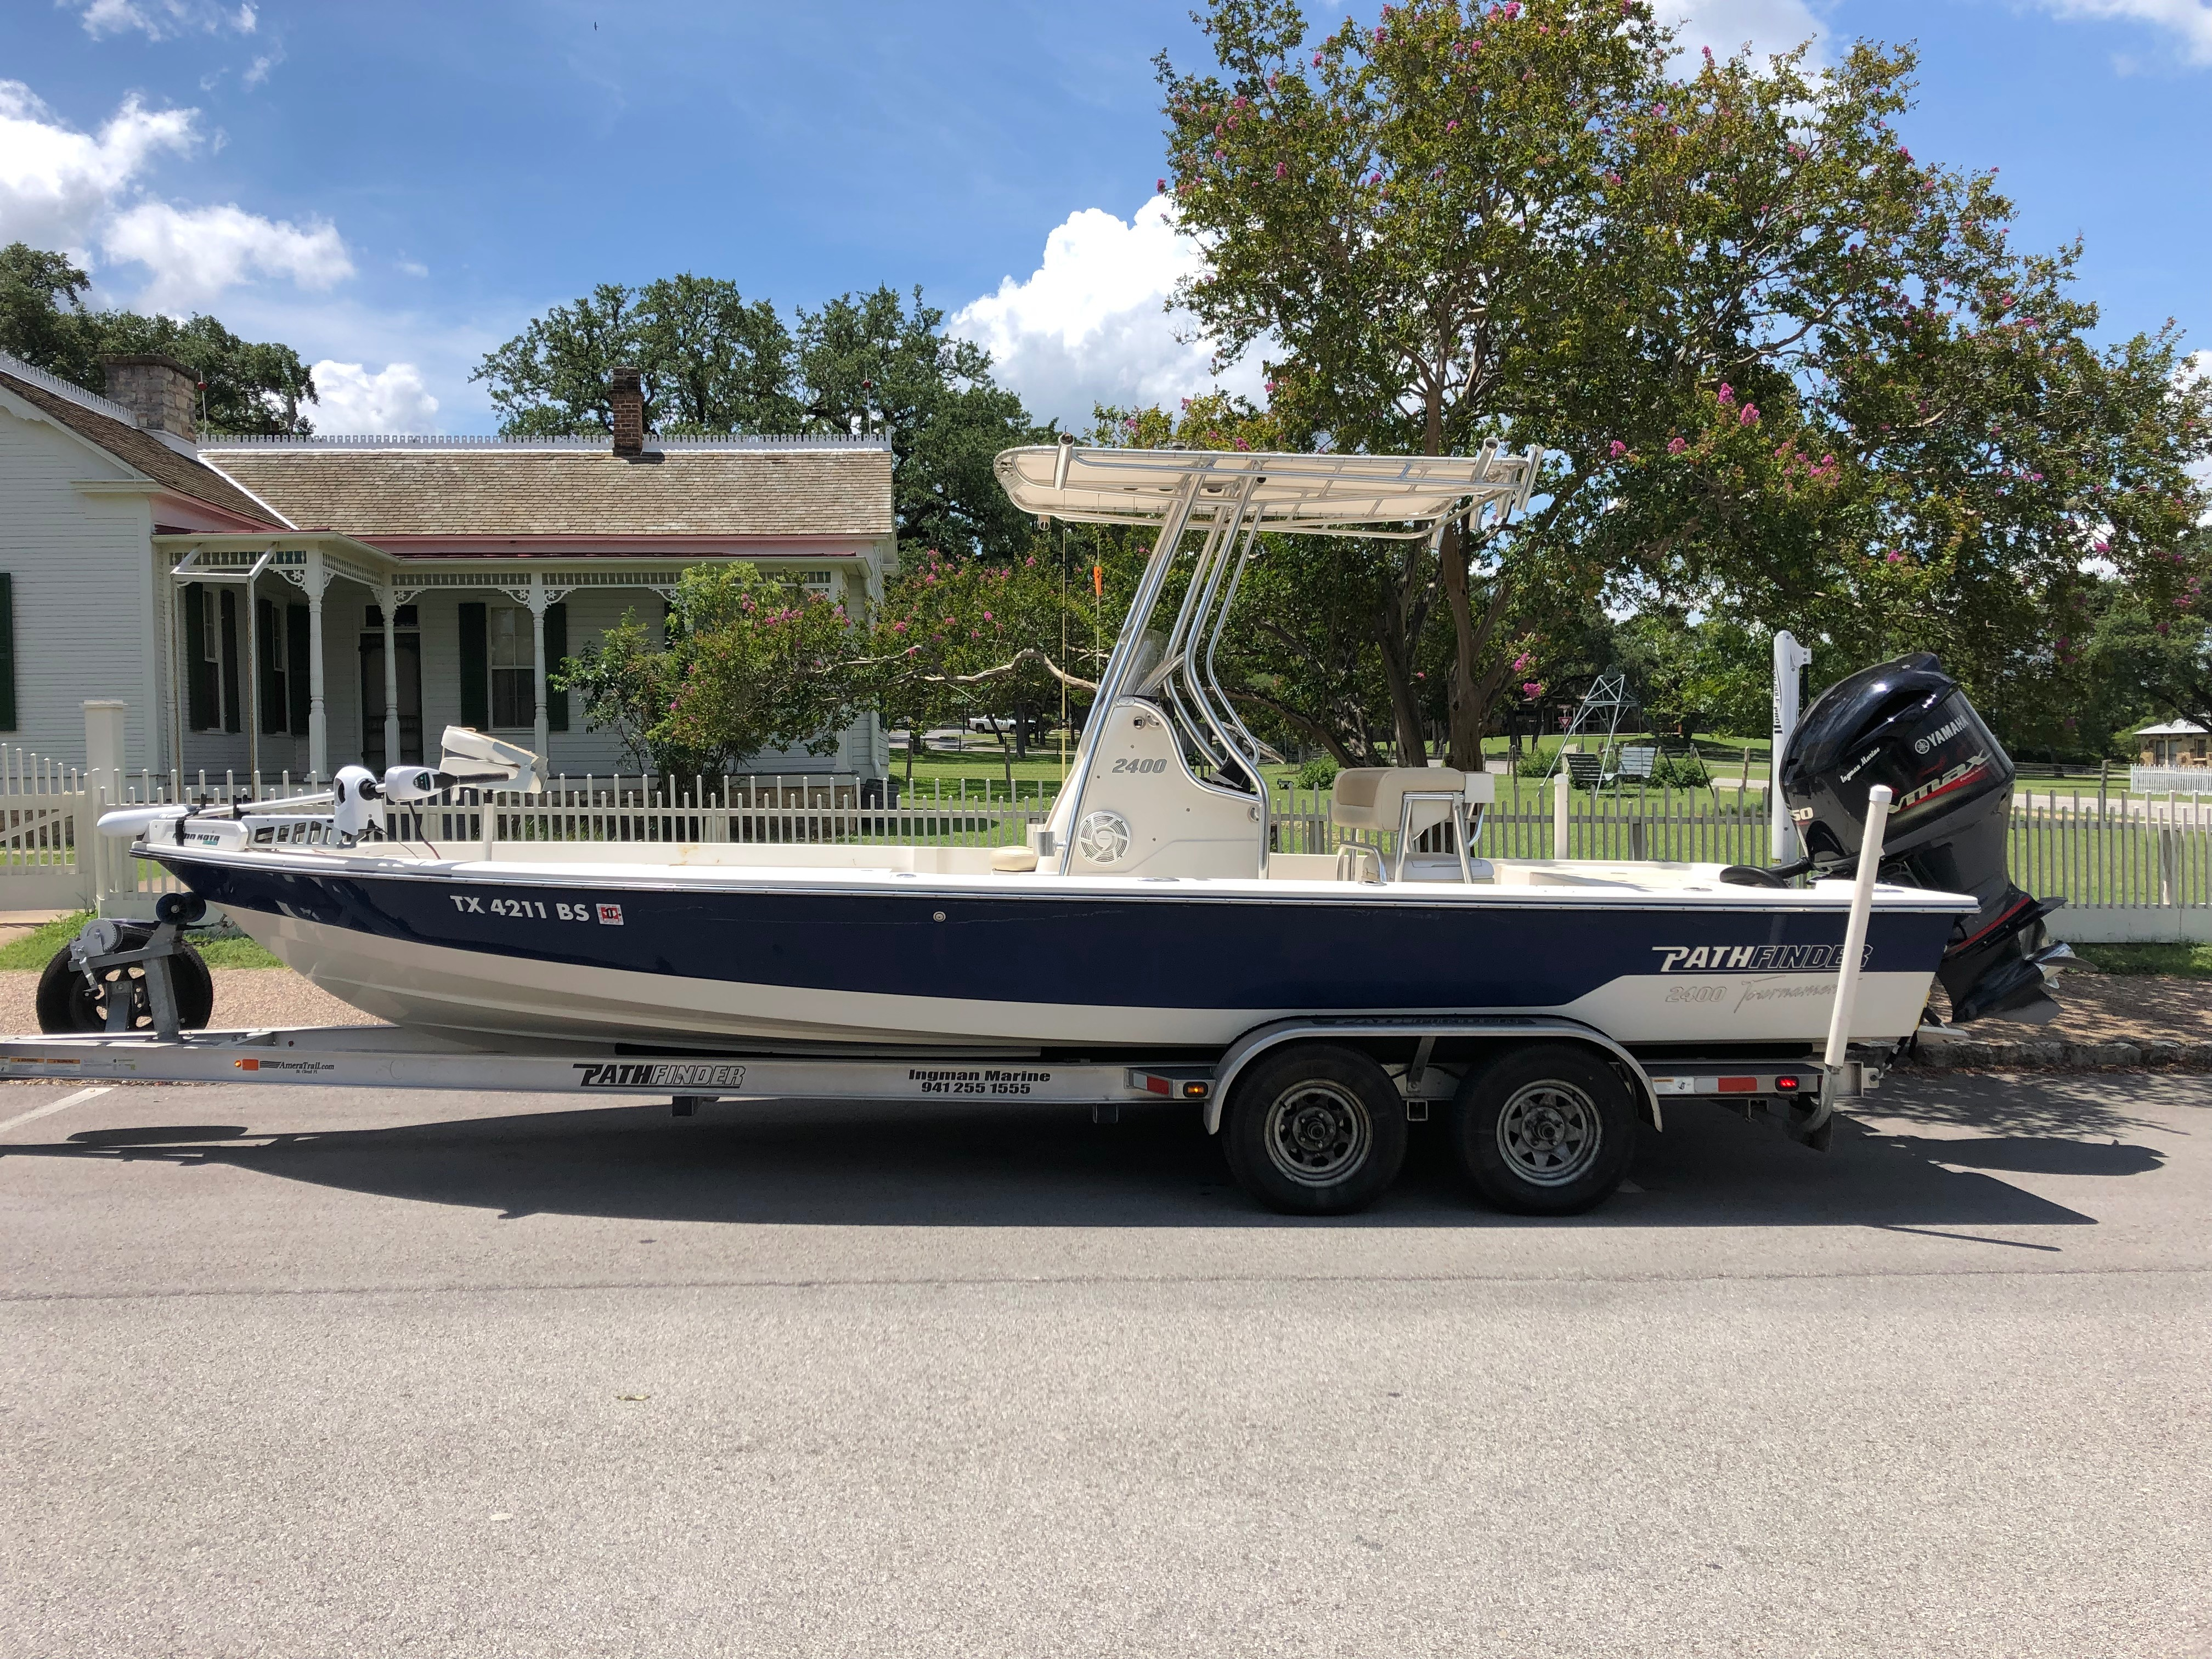 Bay Boat for sale in Texas by owner - Boat Trader